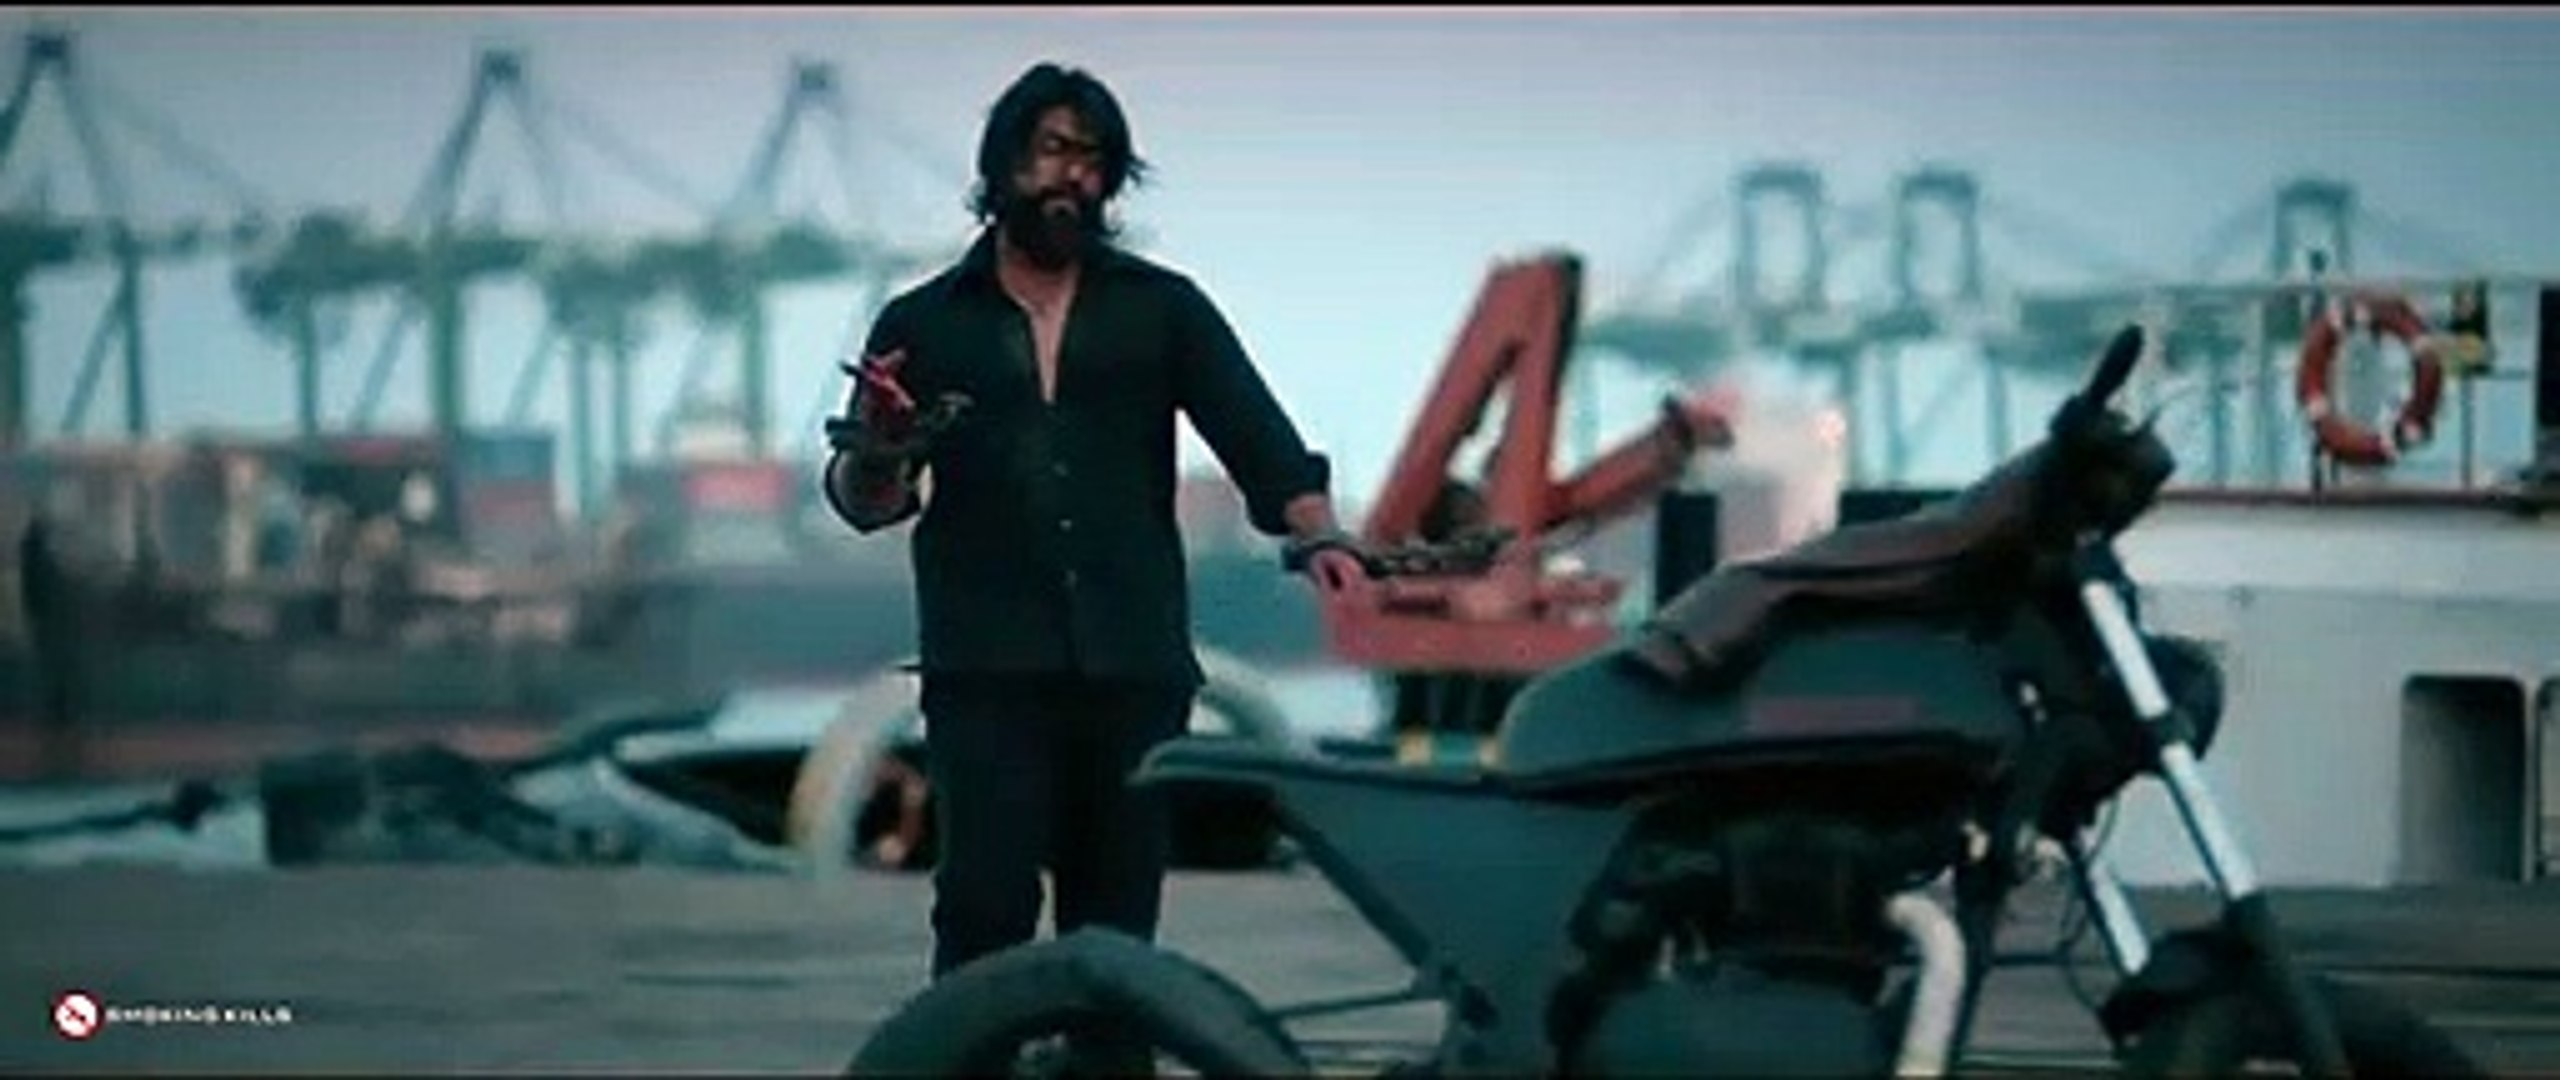 KGF 2 official trailer 2019 -- yash south new action hindi dubbed movie trailer 2019